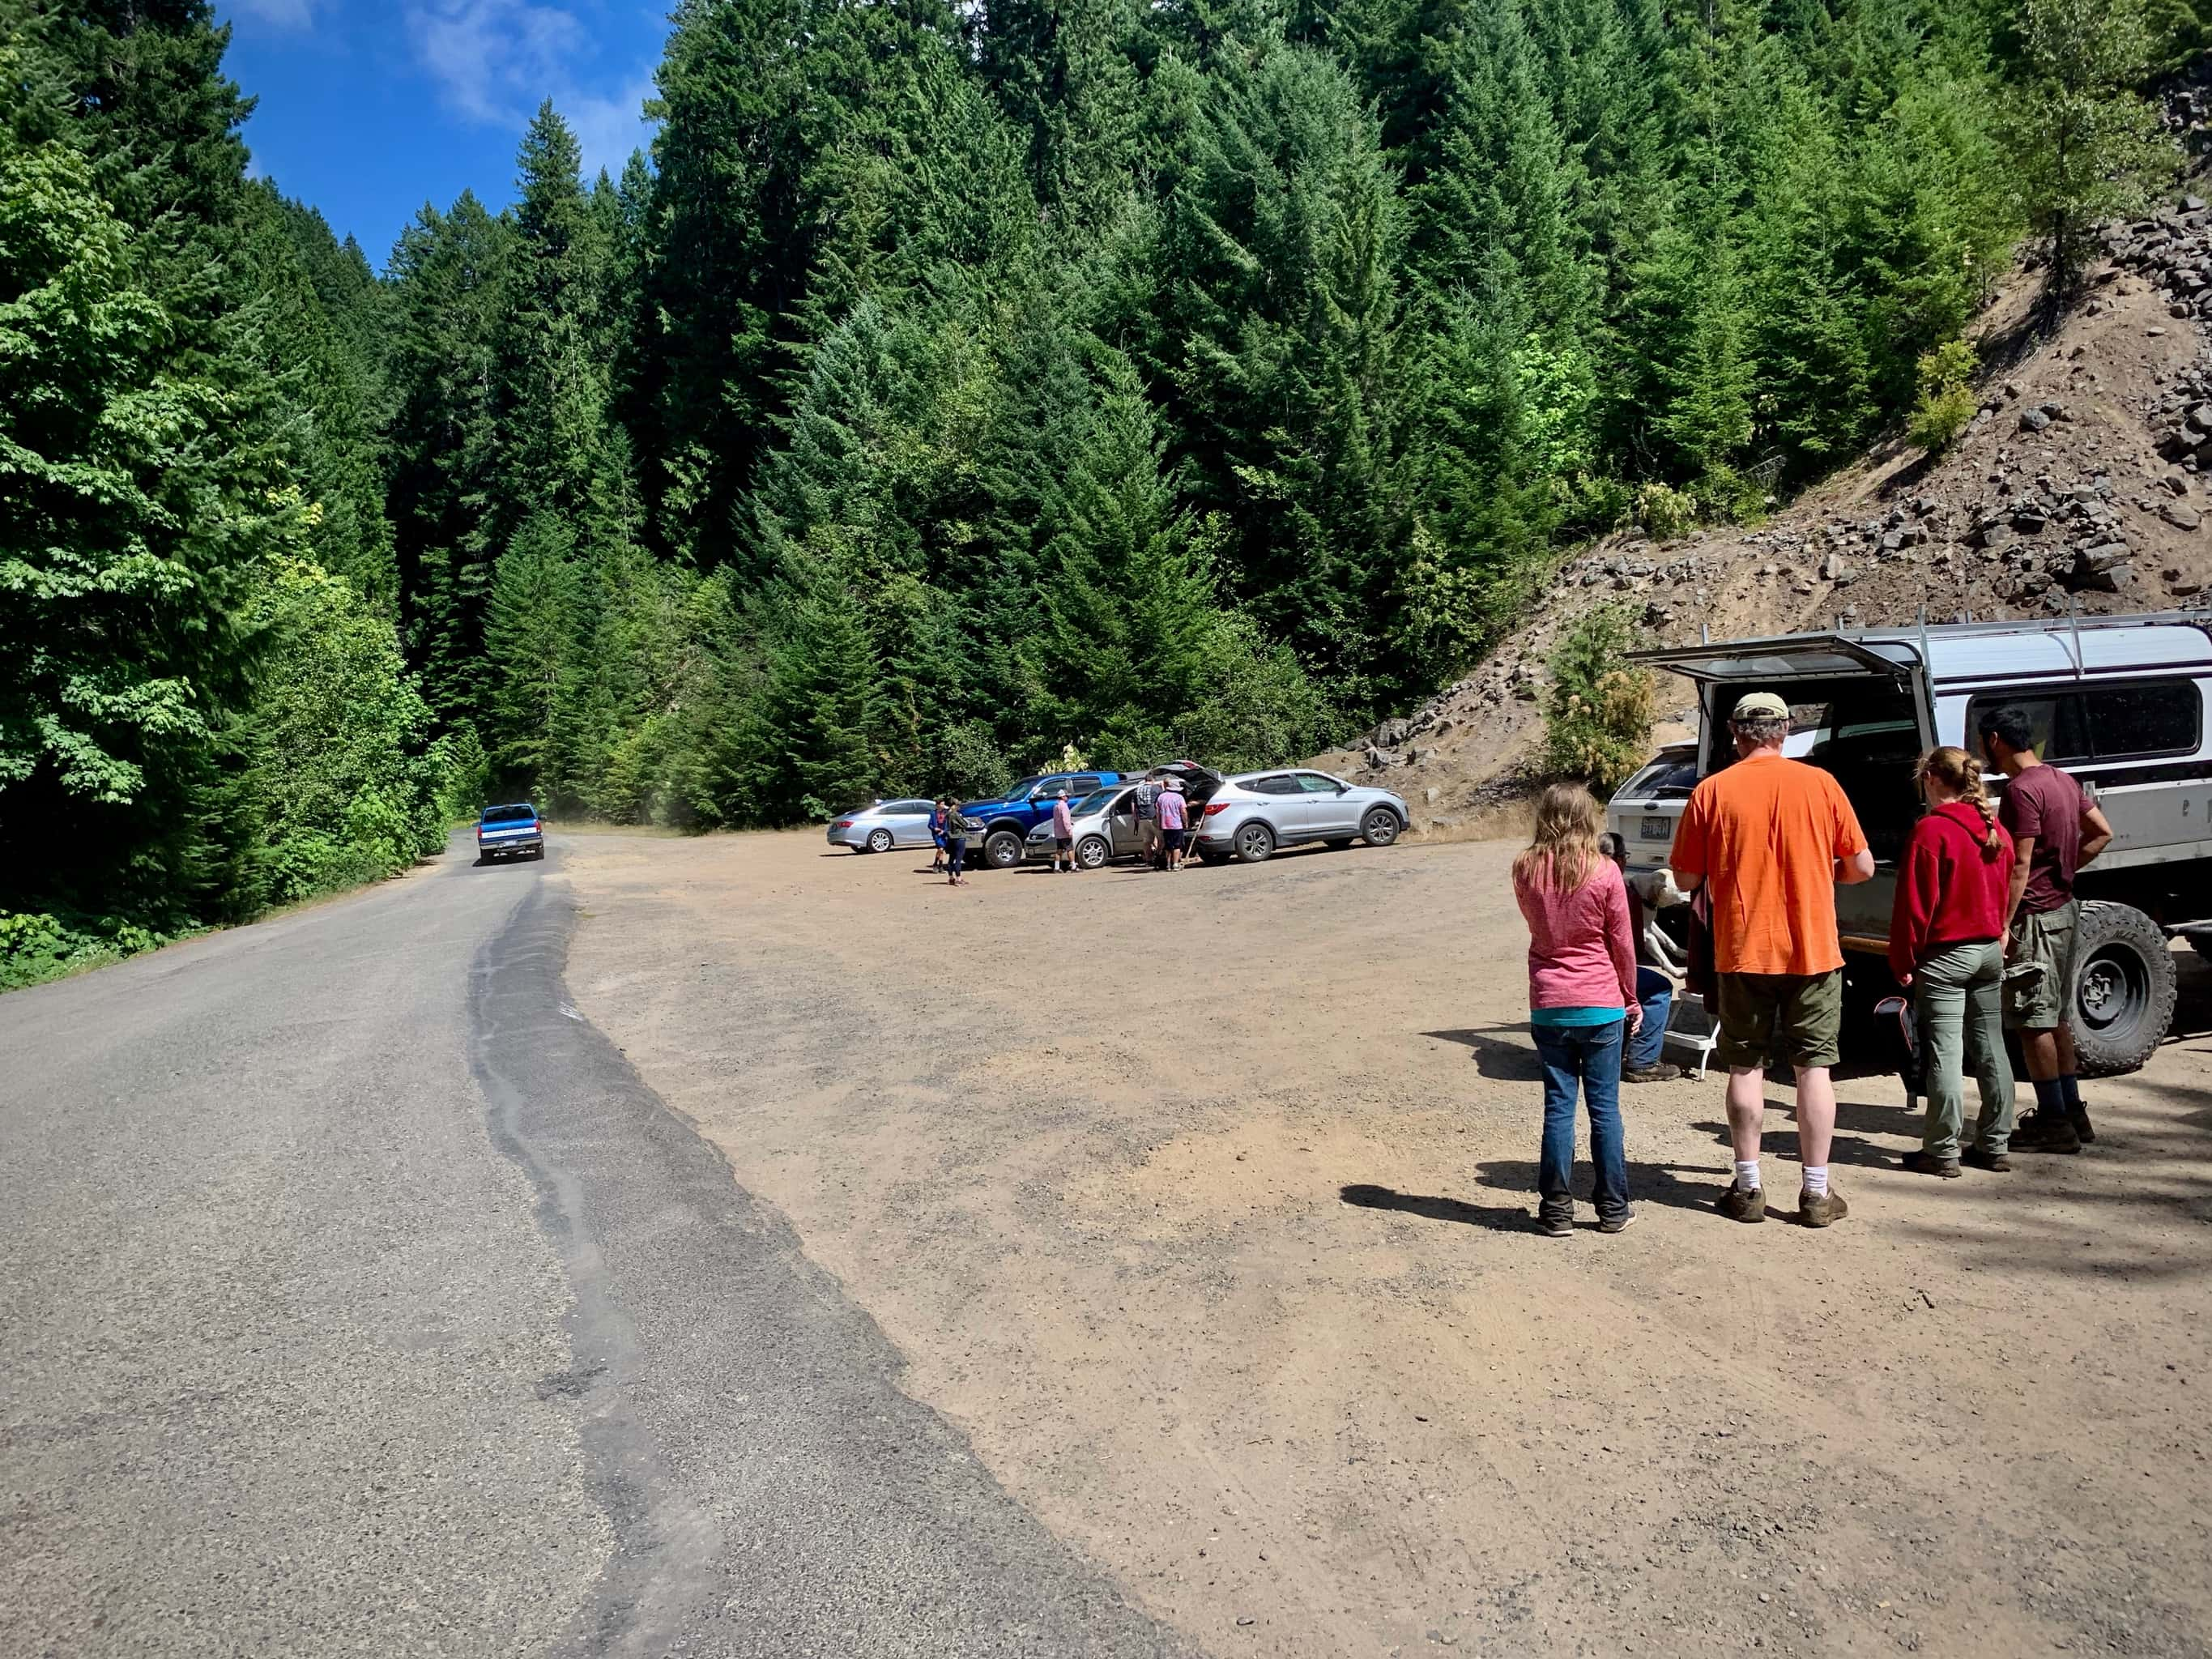 The parking area for Panther Creek falls near Carson, Washington.